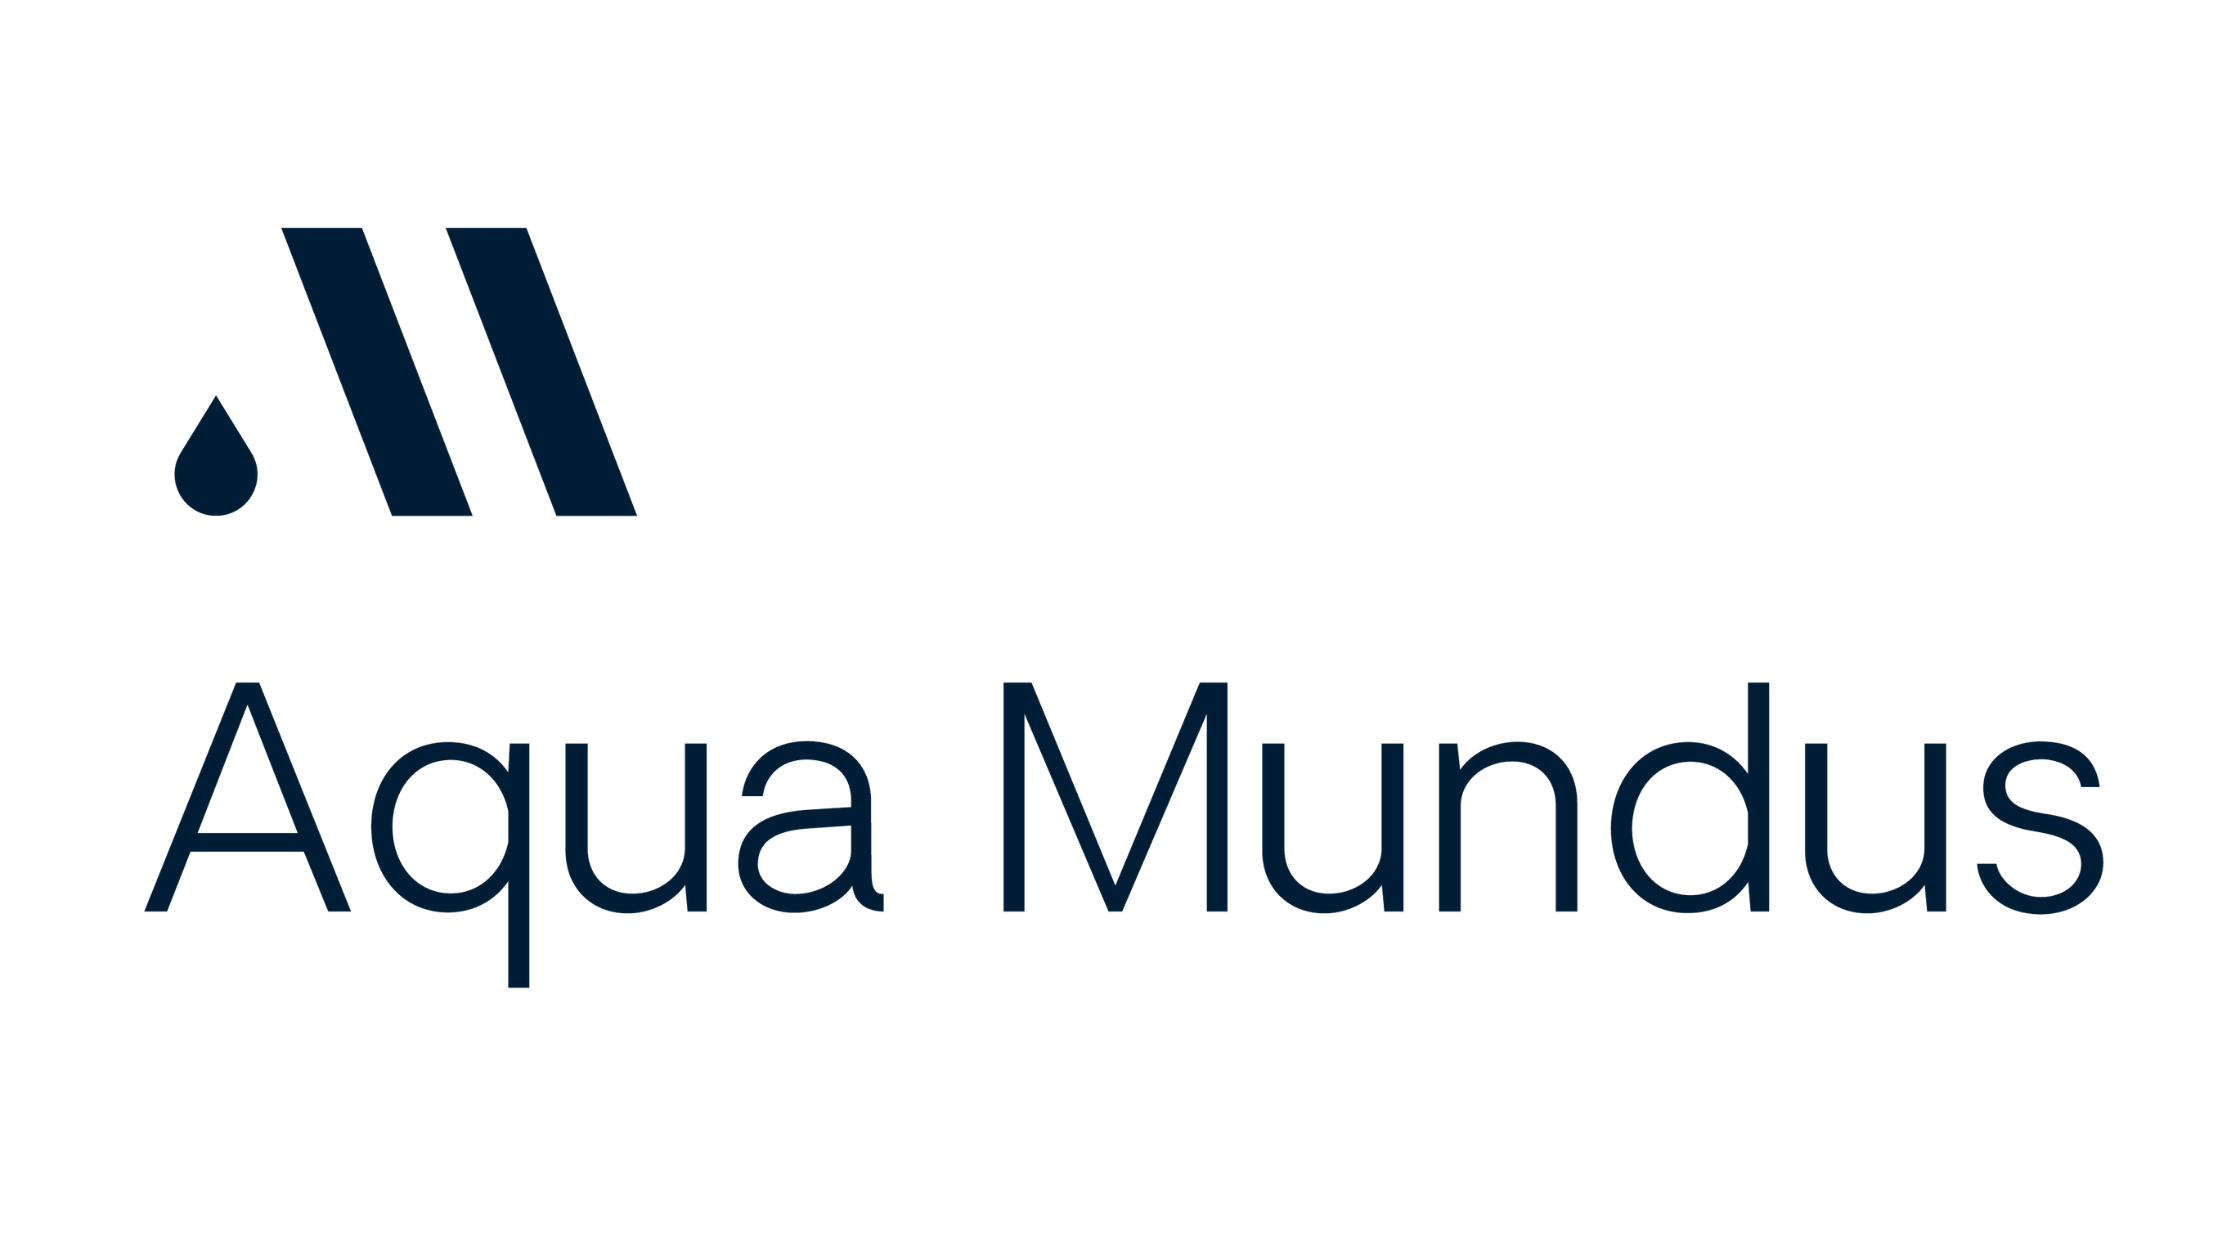 Read Aqua Mundus Reviews